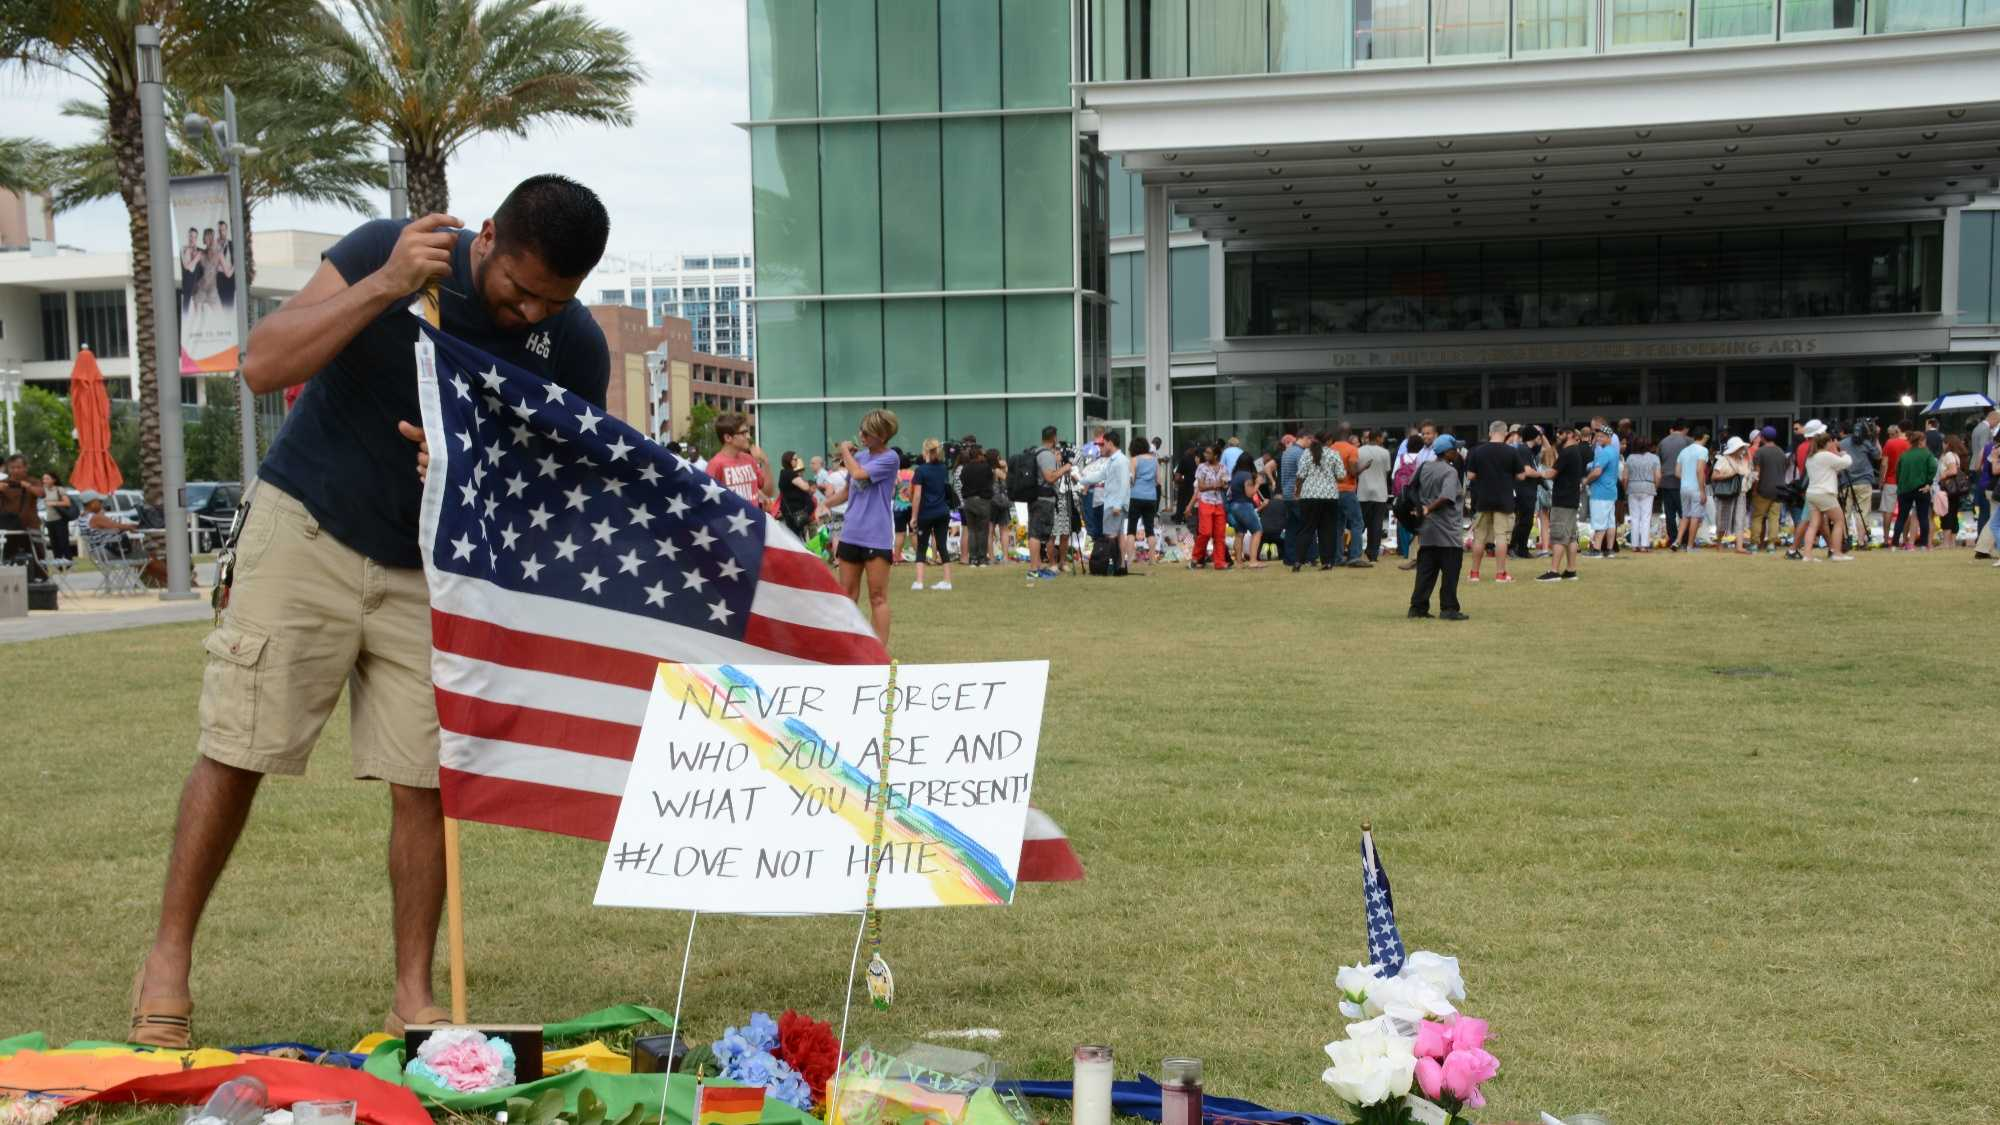 Jose Luis Nevarez secures an American flag into the ground near the memorial for those killed in the Orlando shooting.Nevarez grew up in Orlando and went to high school with one of the victims who was killed.